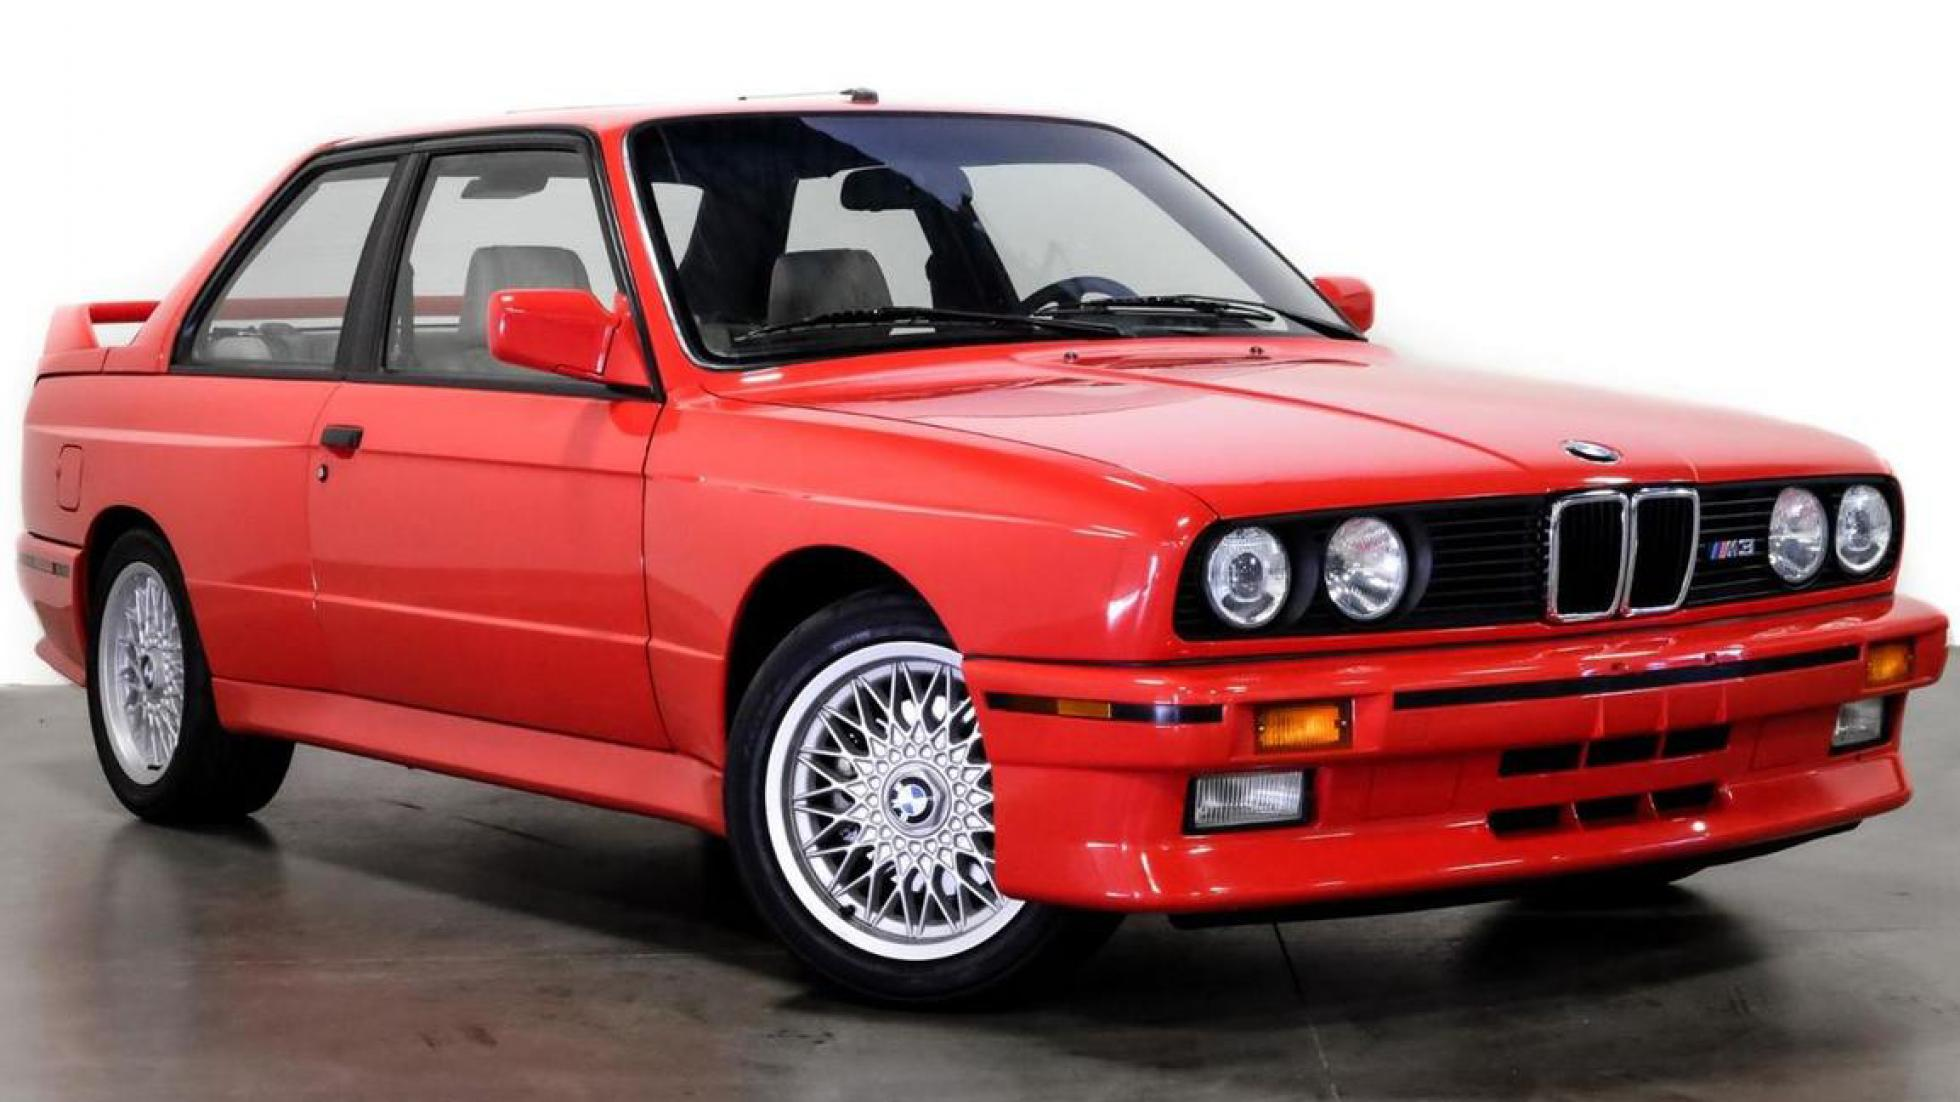 Paul Walker's BMW E30 M3 is for sale